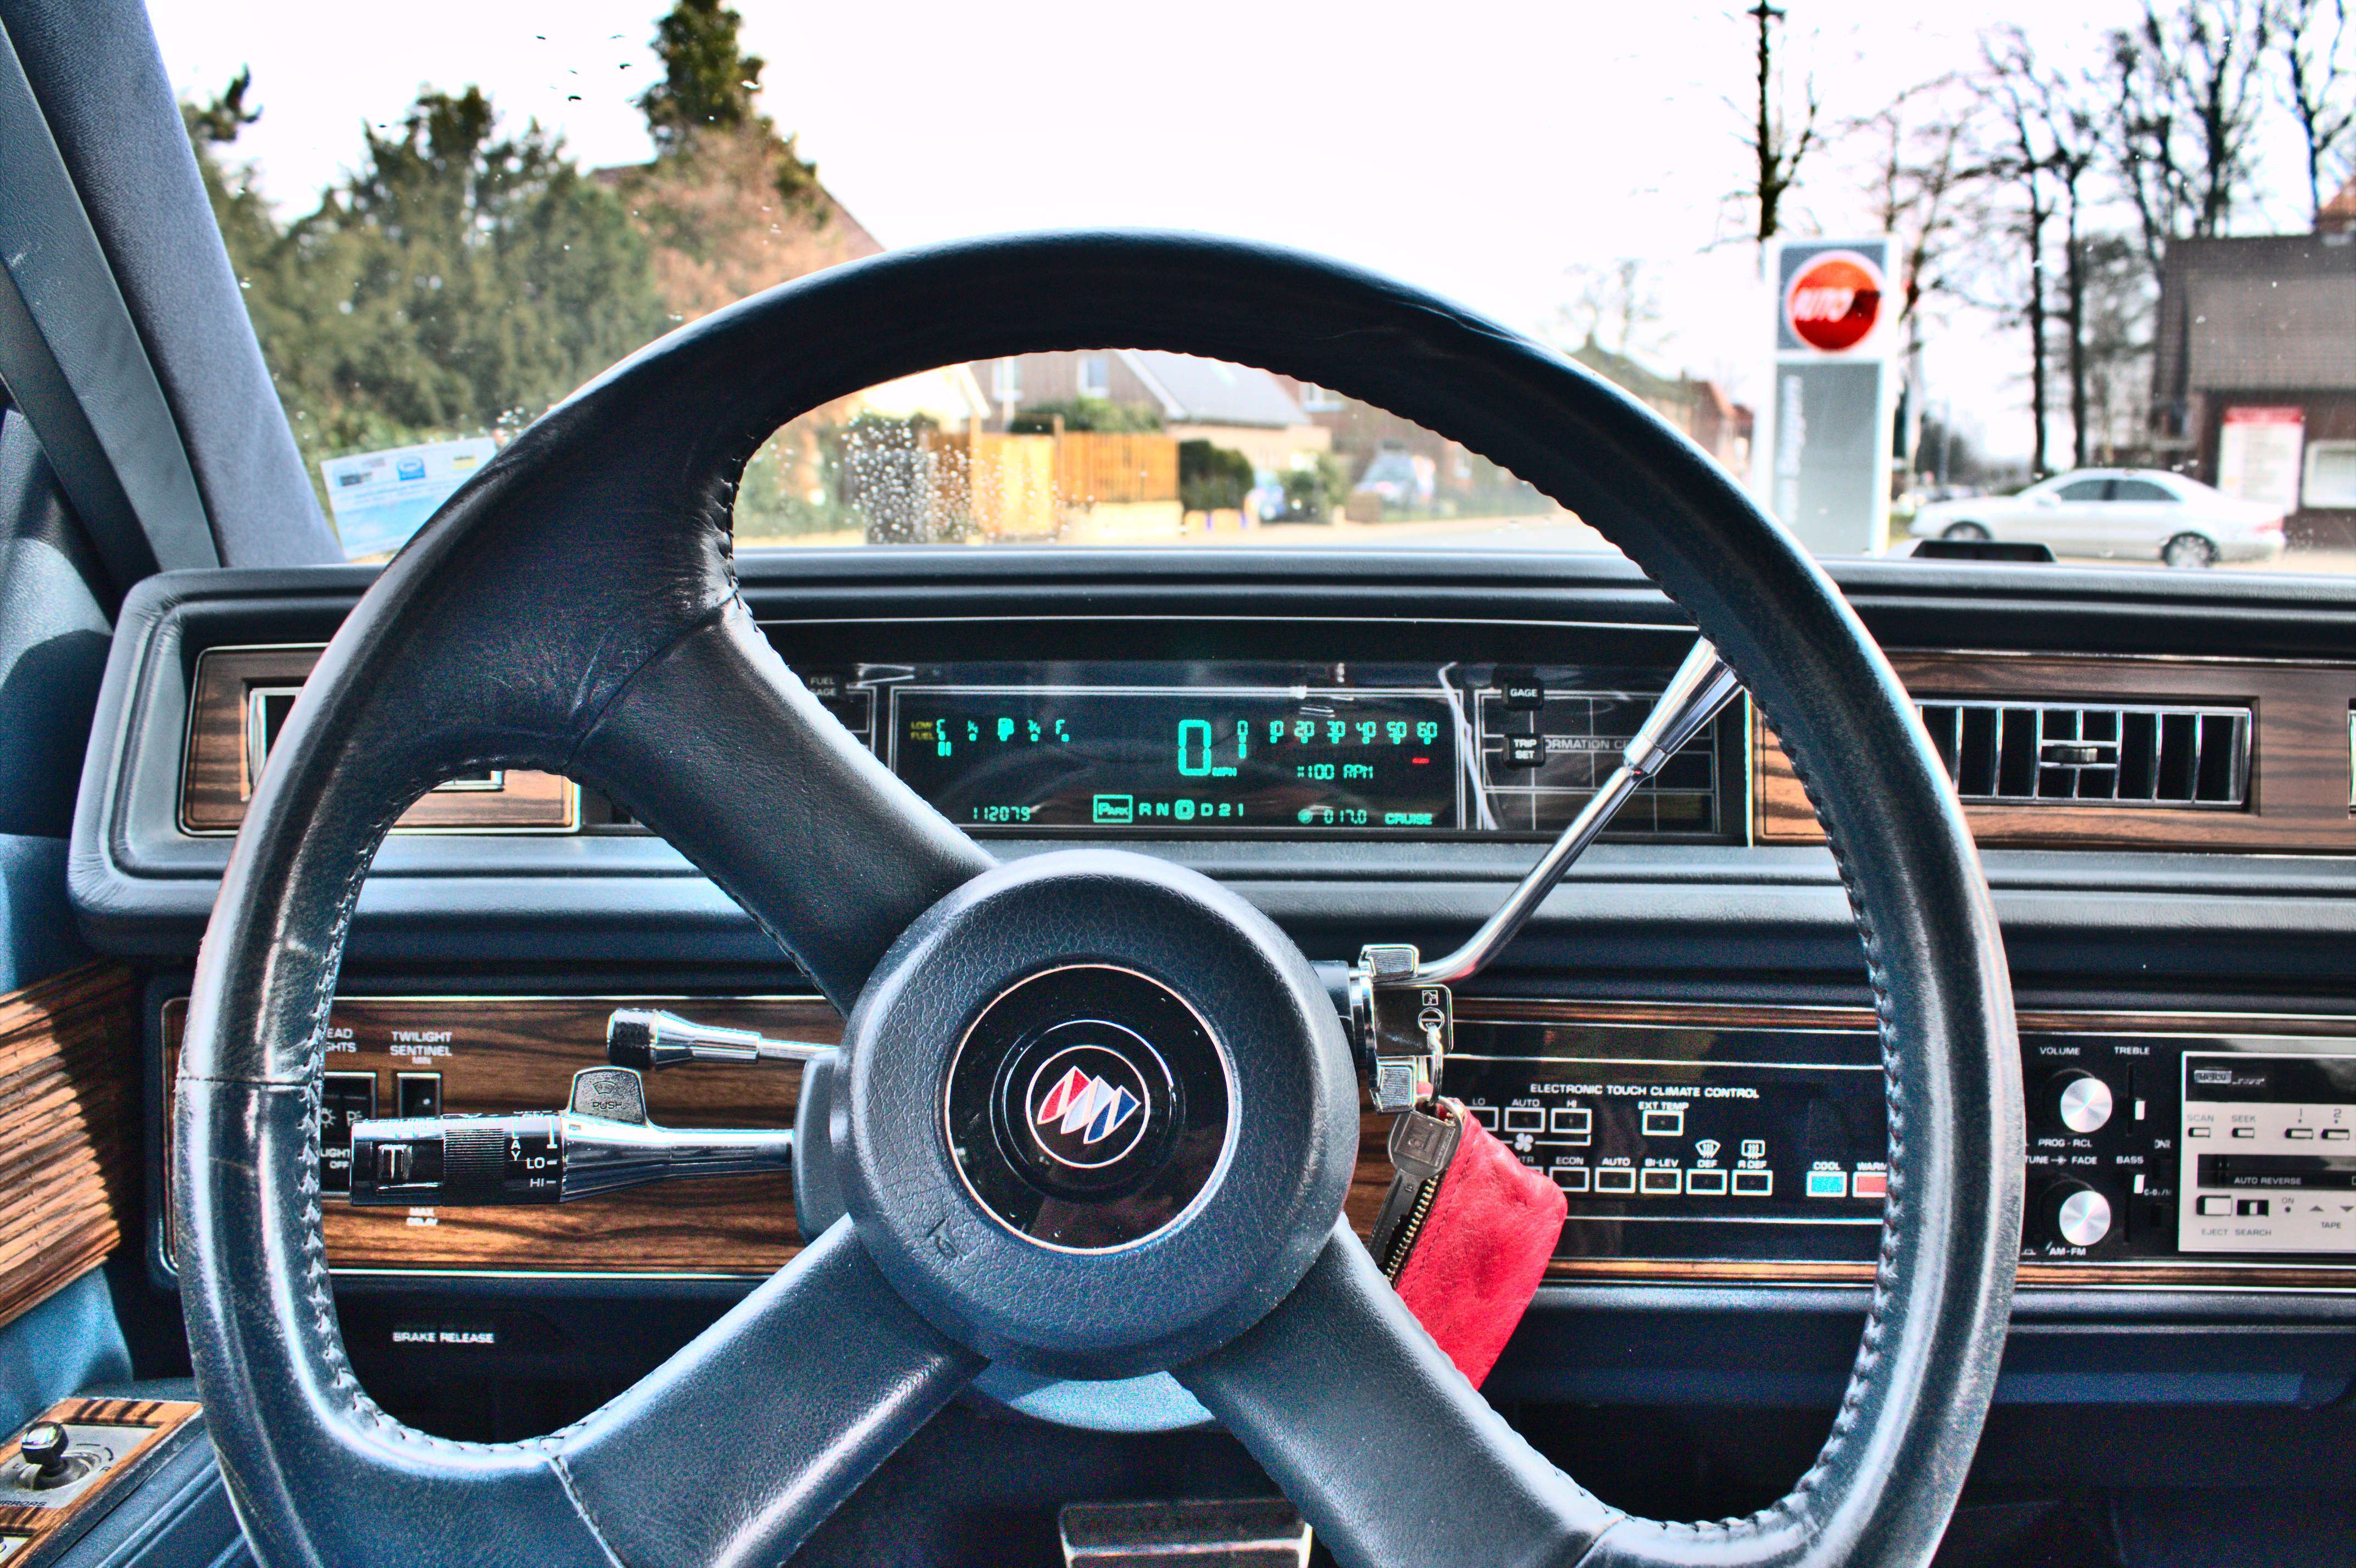 Buick_Electra_1989_digital_cockpit.JPG